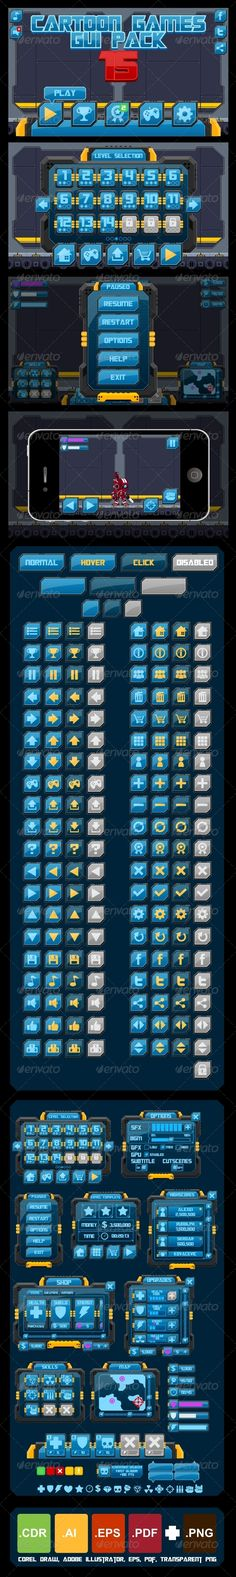 A complete set of graphical user interface (GUI) to build 2D video games.  With techno & futuristic theme. Suitable for action, space shooter, outer space, alien, robot, mecha, star war, sci-fi, and other similar games.  #game #asset #gui #pack #techno #robot #button #icon